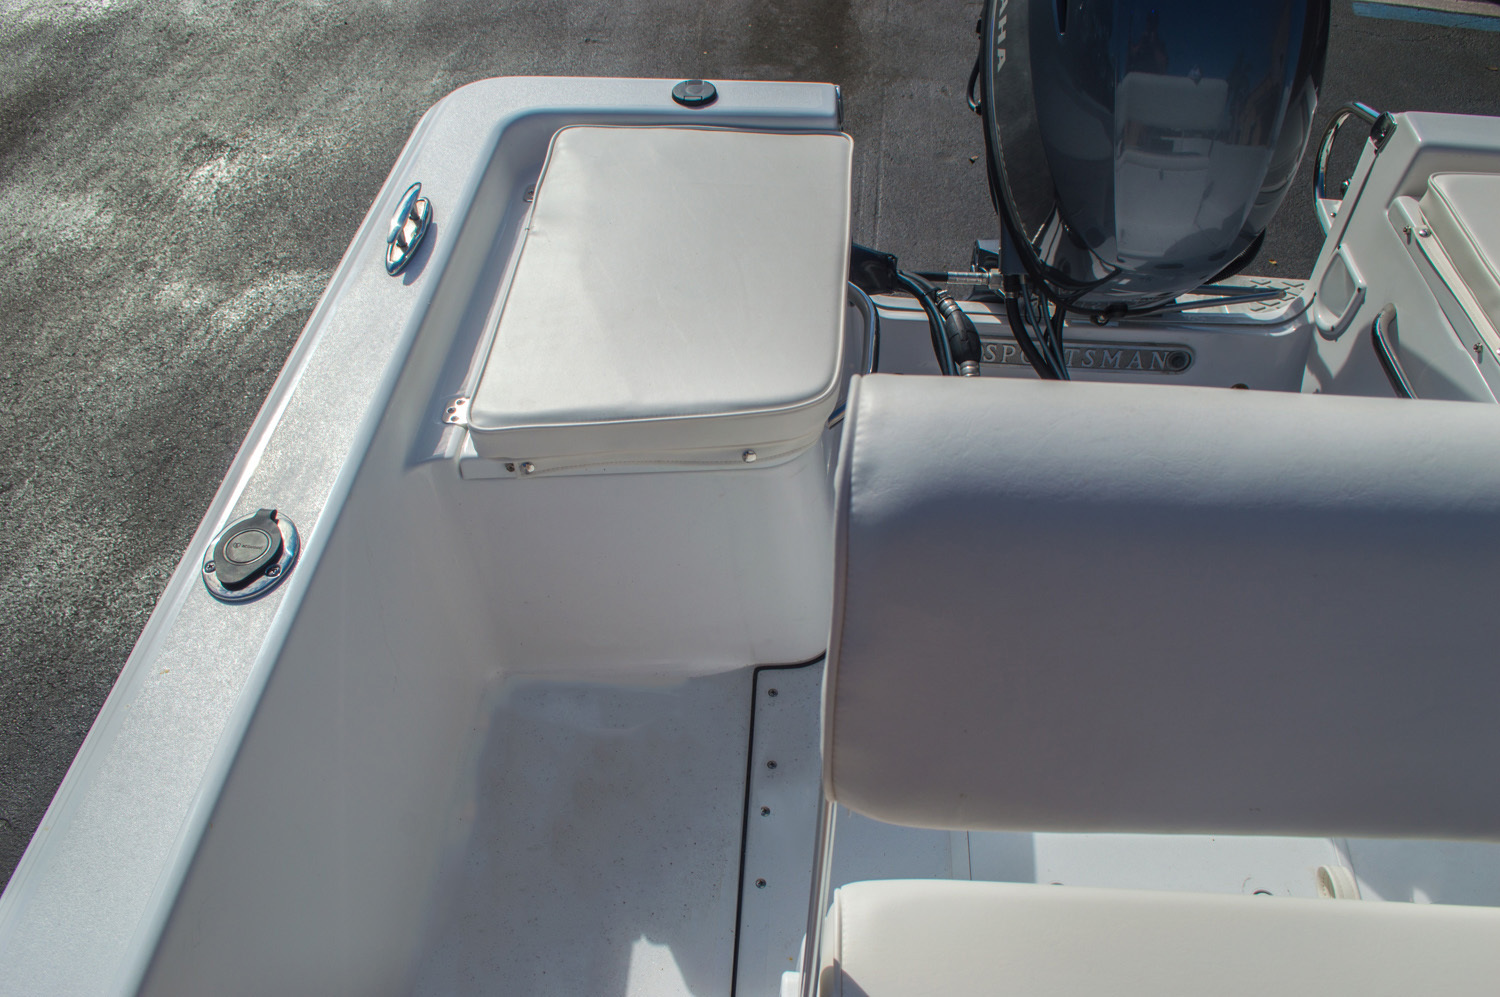 Thumbnail 17 for New 2016 Sportsman 17 Island Reef boat for sale in Vero Beach, FL